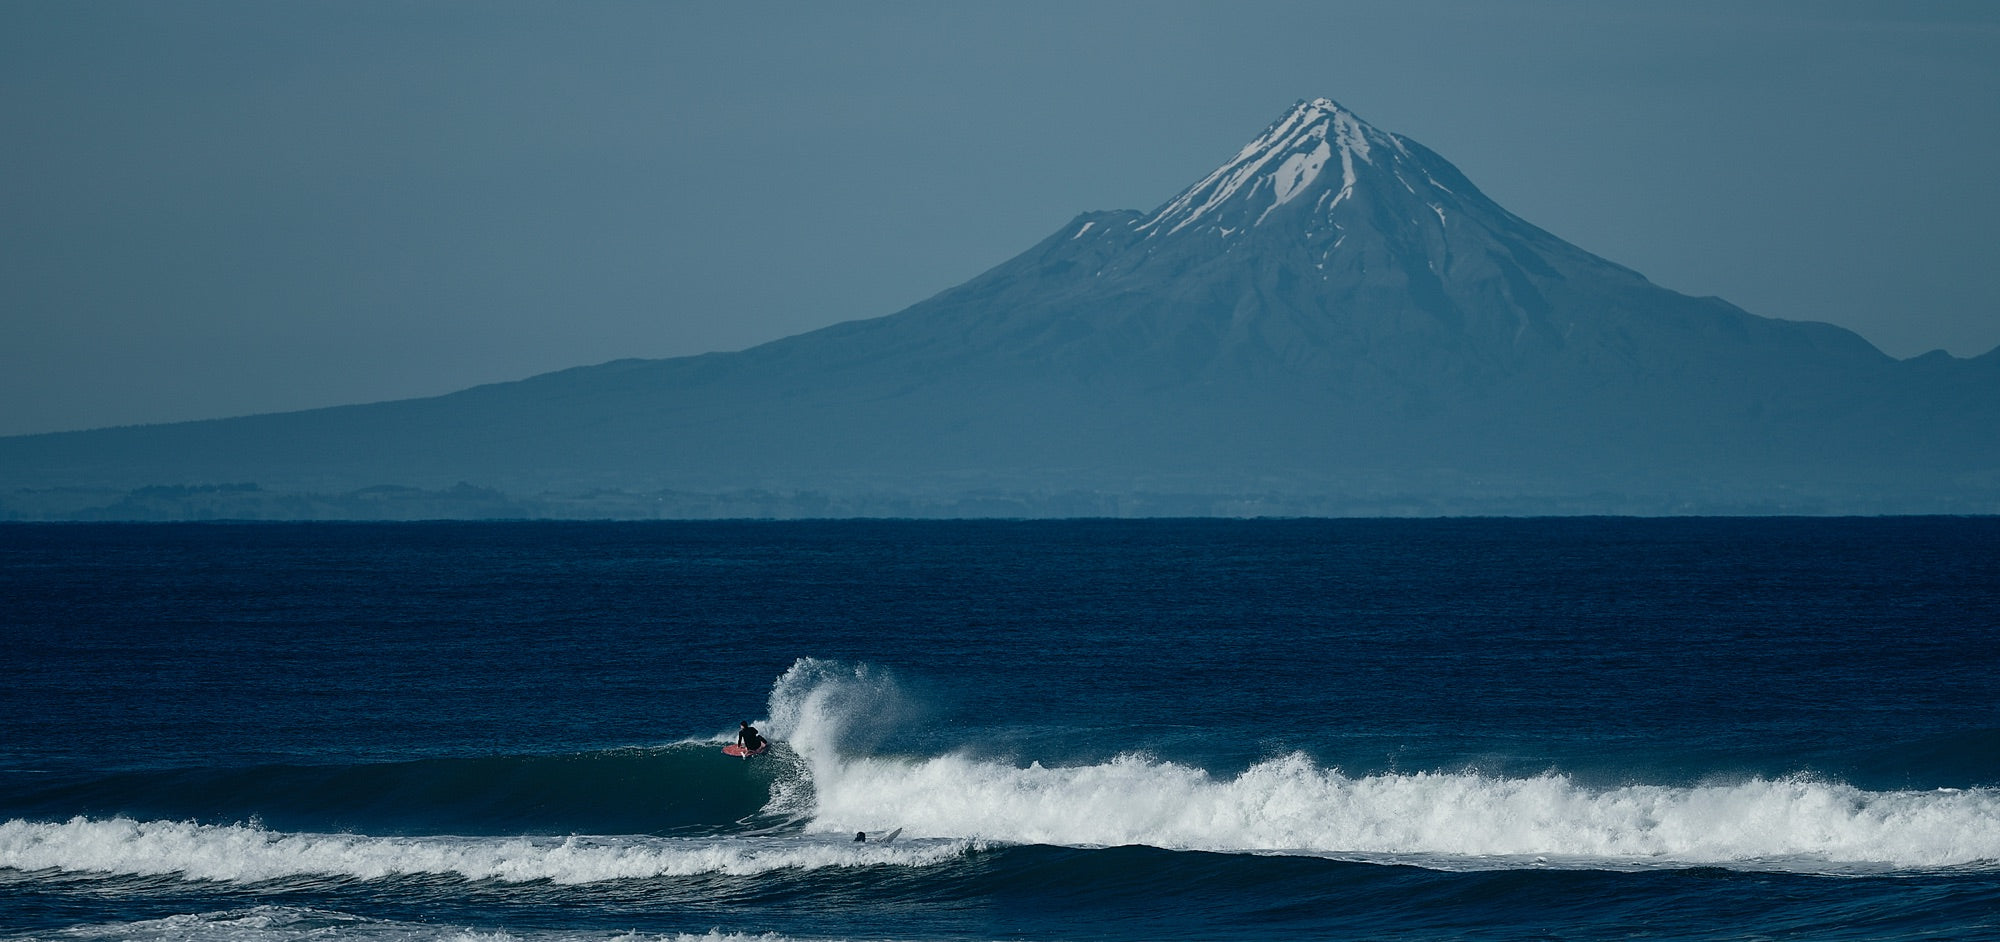 A surfer rides a beautiful wave with a mountain in the distance